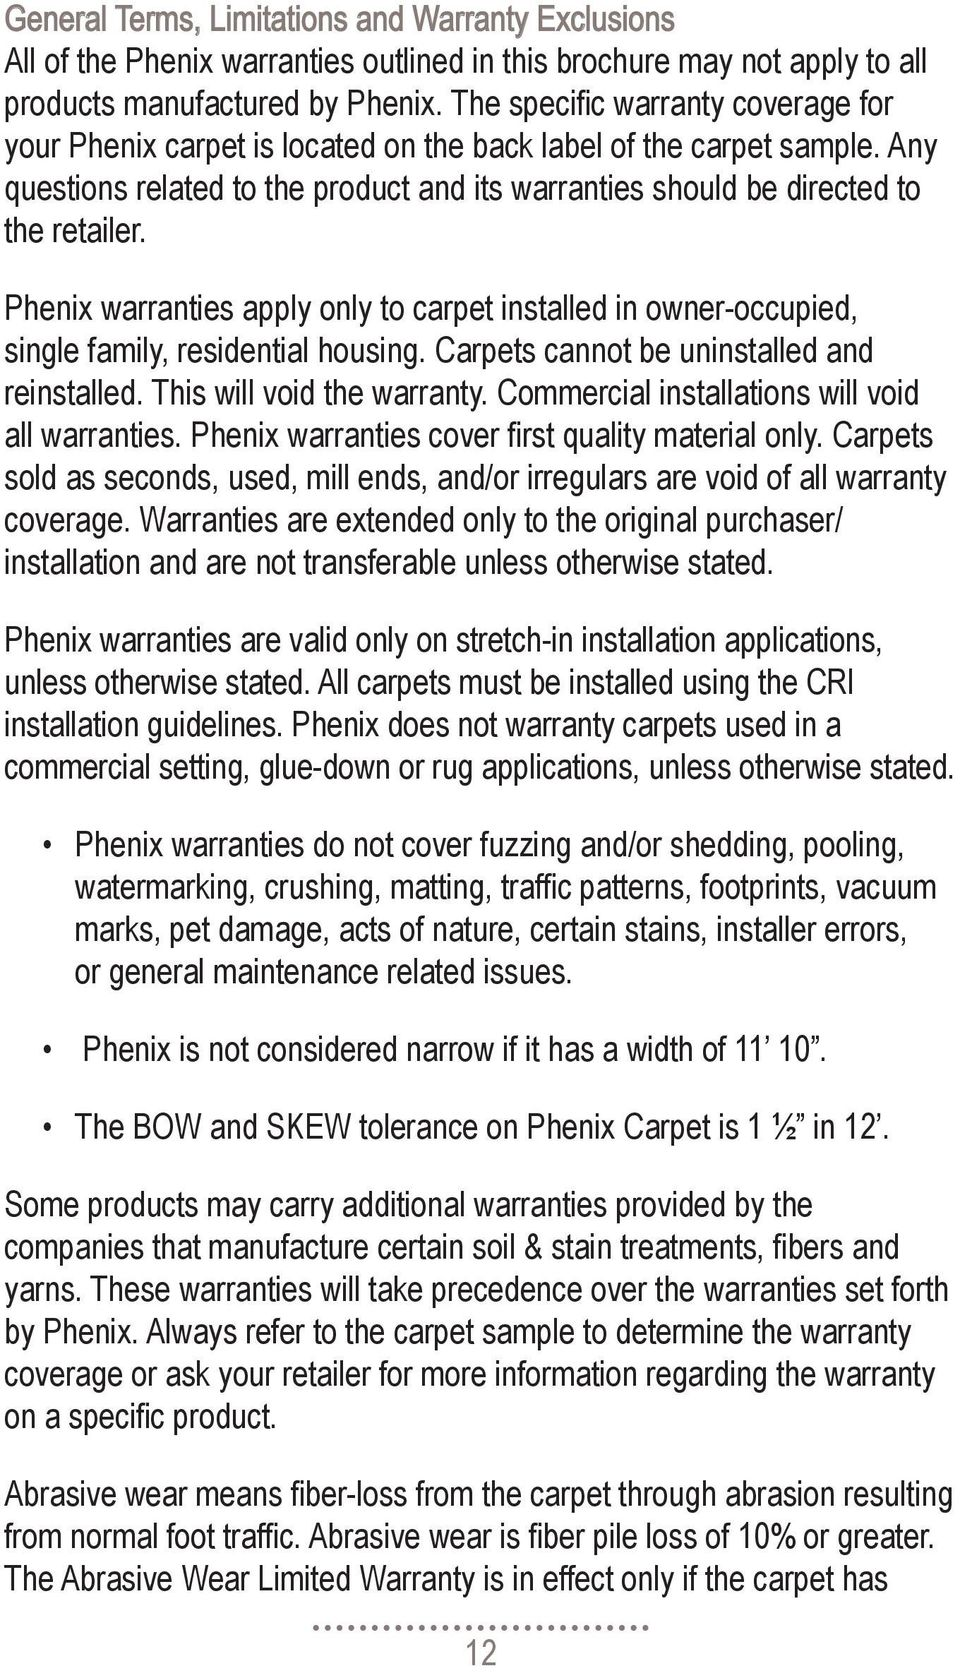 Phenix warranties apply only to carpet installed in owner-occupied, single family, residential housing. Carpets cannot be uninstalled and reinstalled. This will void the warranty.